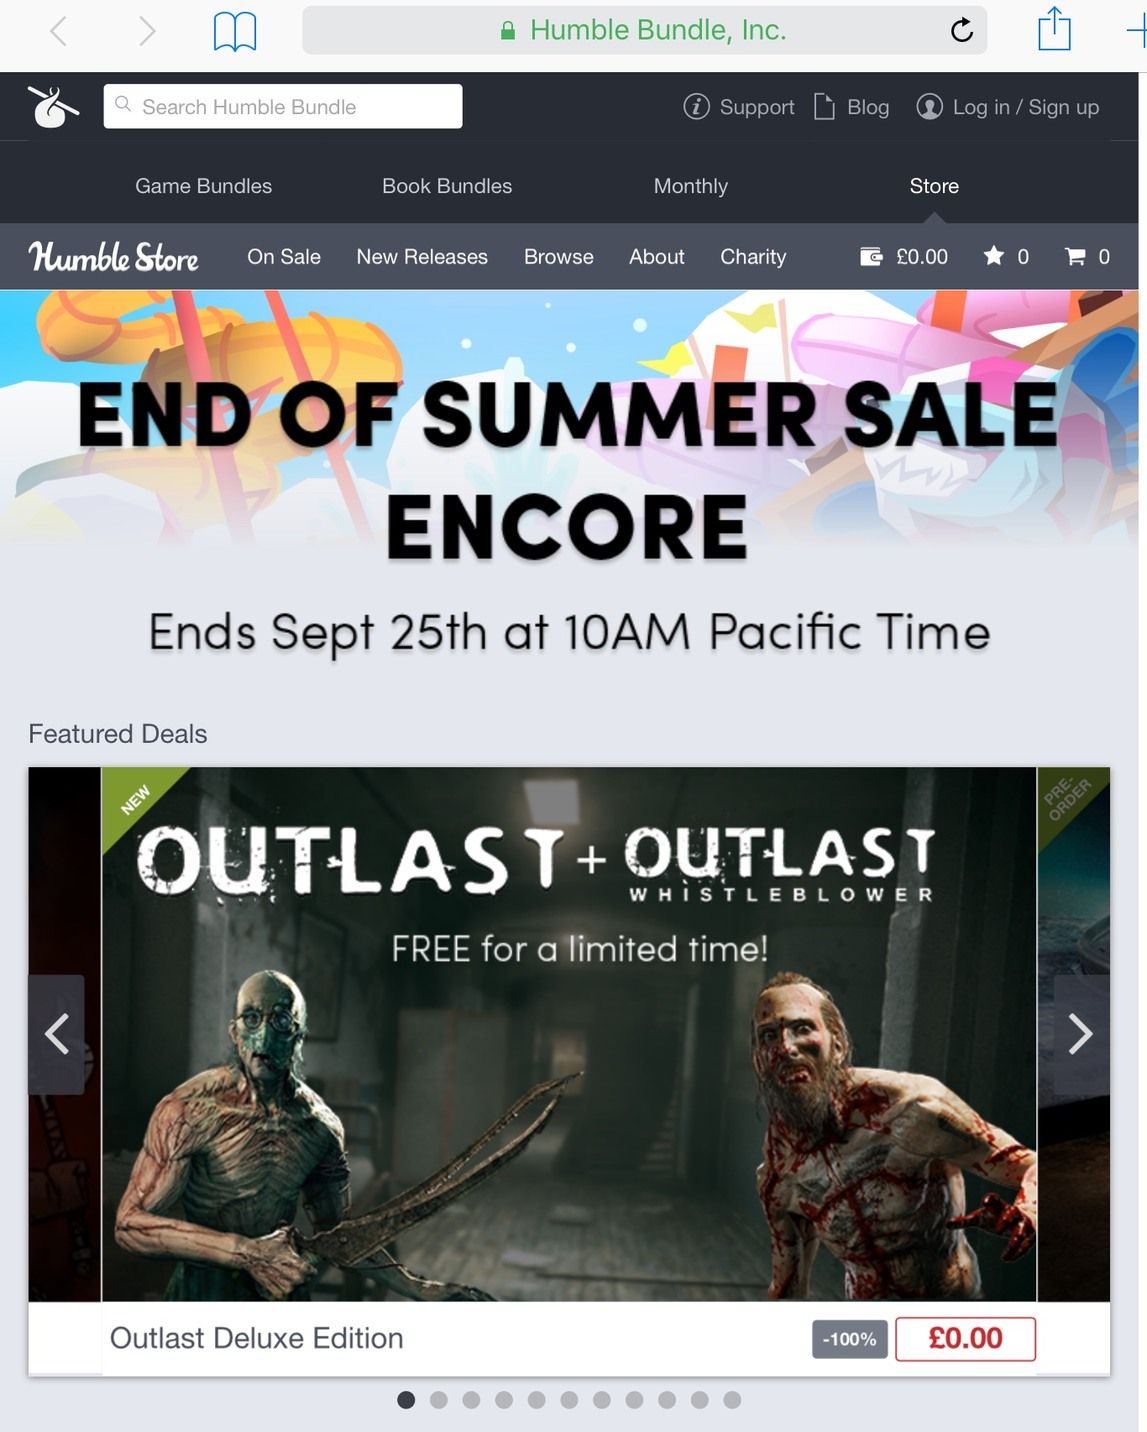 OUTLAST FREE FOR A LIMITED TIME! (PC STEAM) get yours @ humblebundle.com - meme